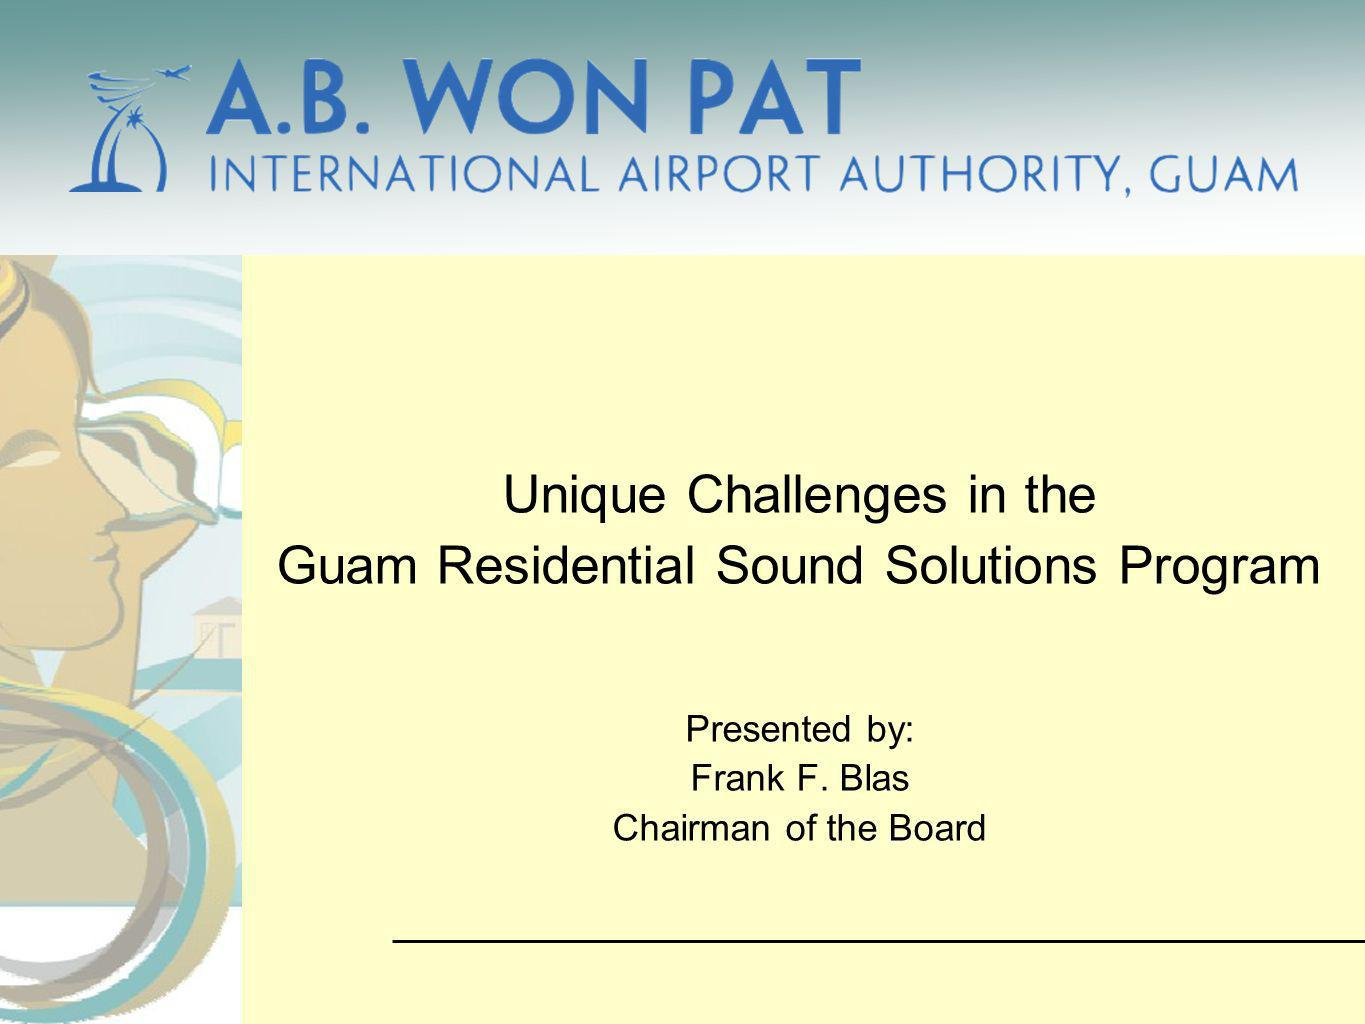 Unique Challenges in the Guam Residential Sound Solutions Program